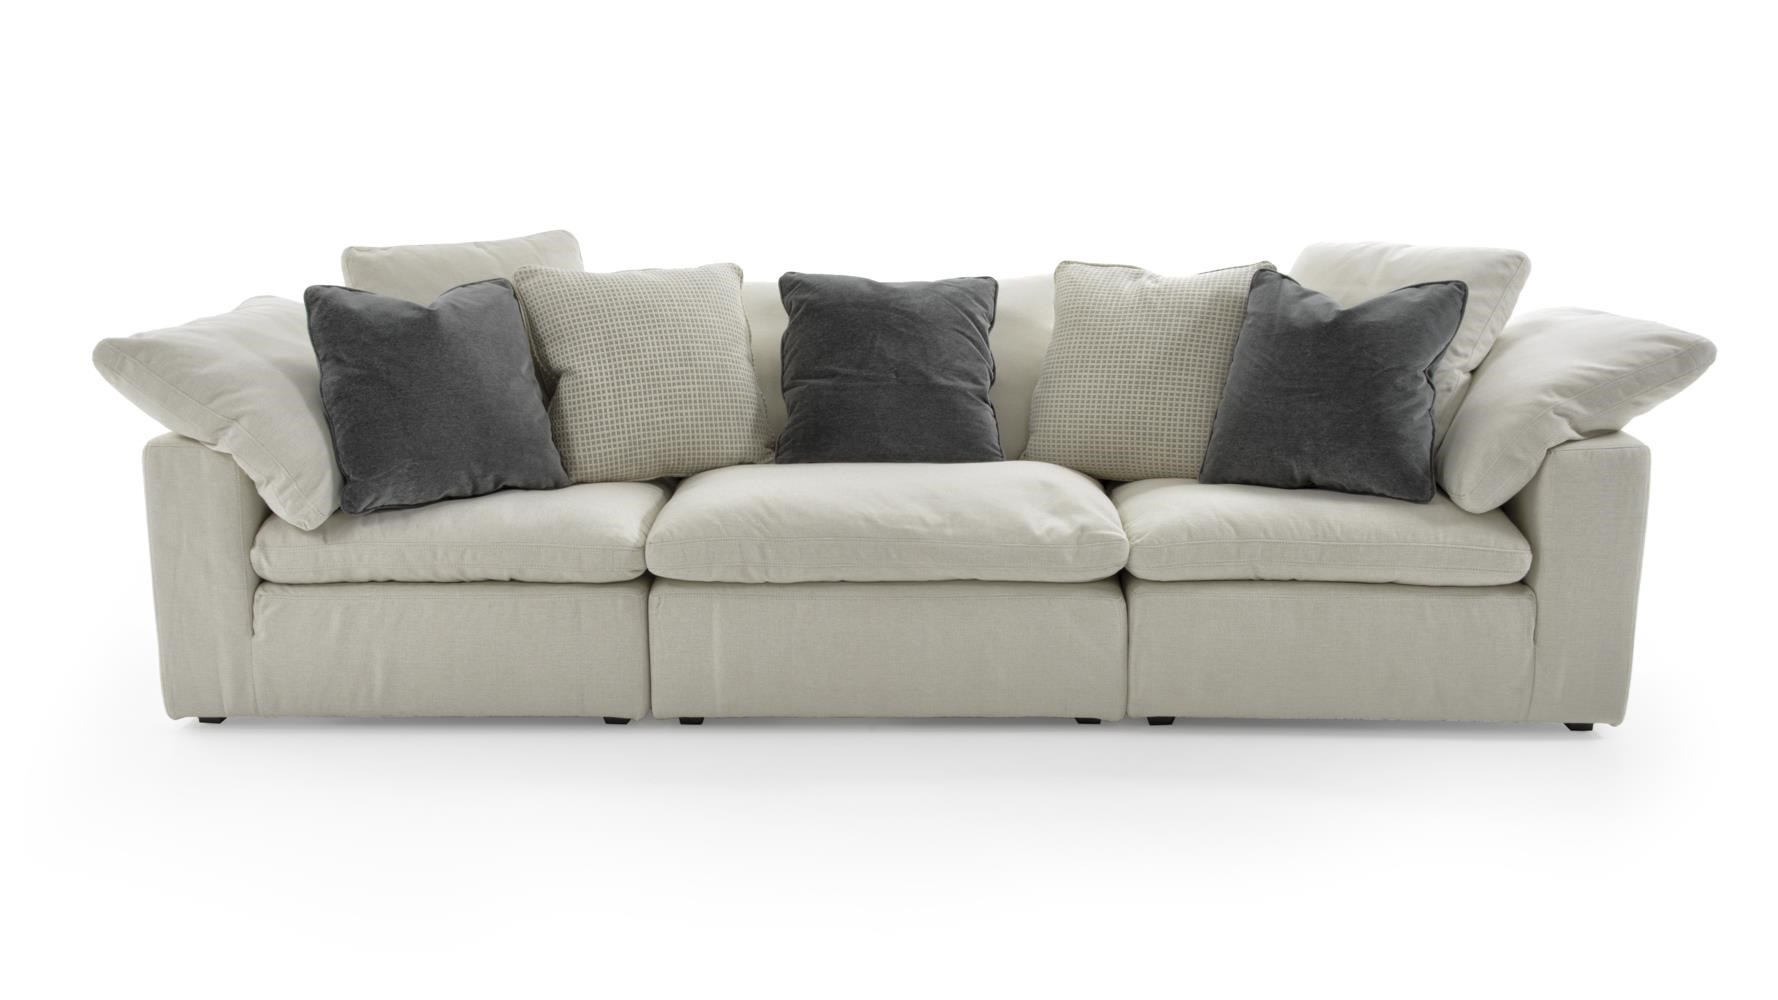 Palmer 3 Pc Sectional Sofa by Universal at Baer's Furniture